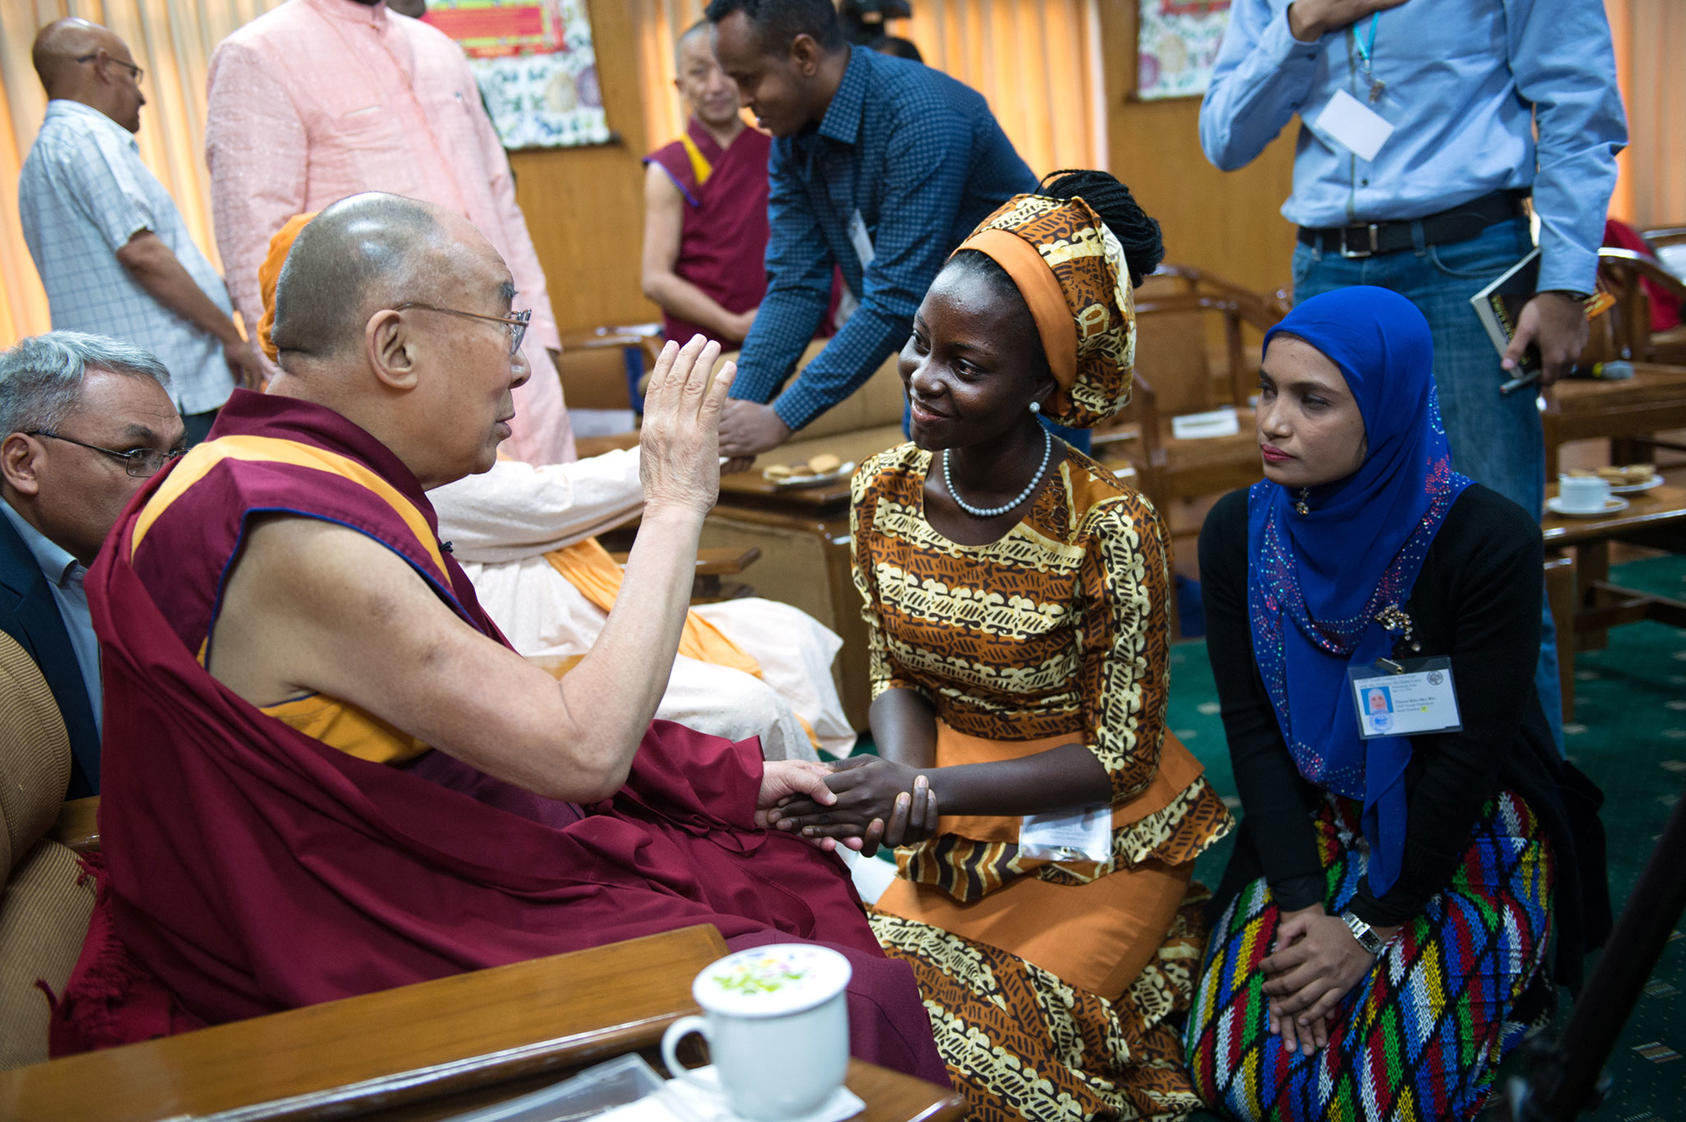 United States Institute of Peace (USIP) Generation Change Youth Leaders' Exchange with His Holiness the Dalai Lama 2020 (Fully-funded)